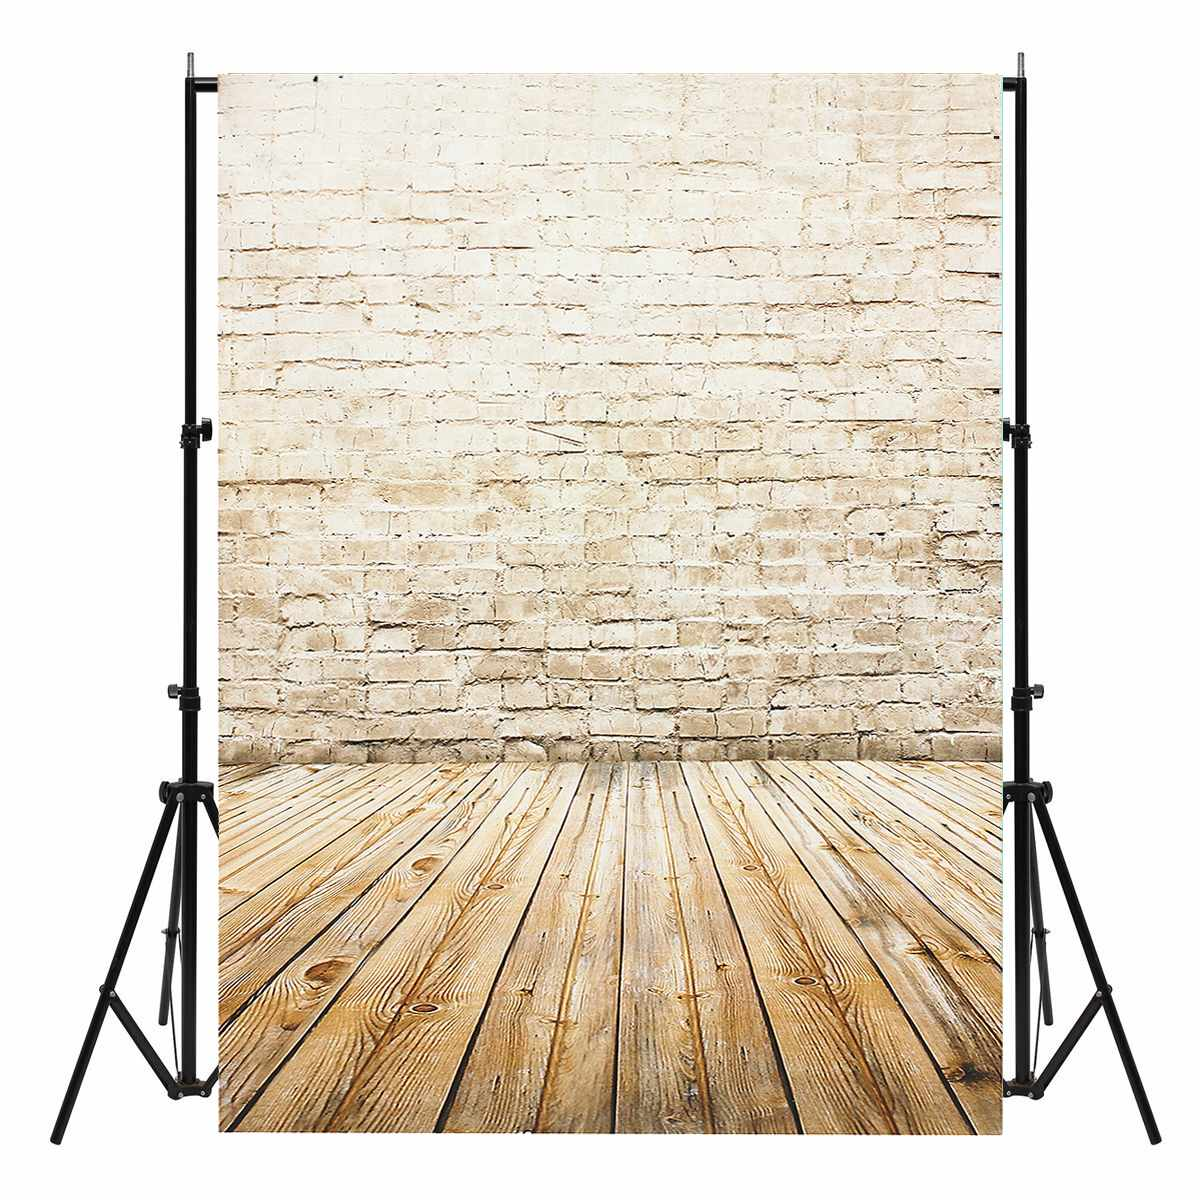 2017 New Arrival 3X5ft Vinyl Photography Background Wood Floor Brick Backdrops Photo Studio Props shengyongbao 300cm 200cm vinyl custom photography backdrops brick wall theme photo studio props photography background brw 12